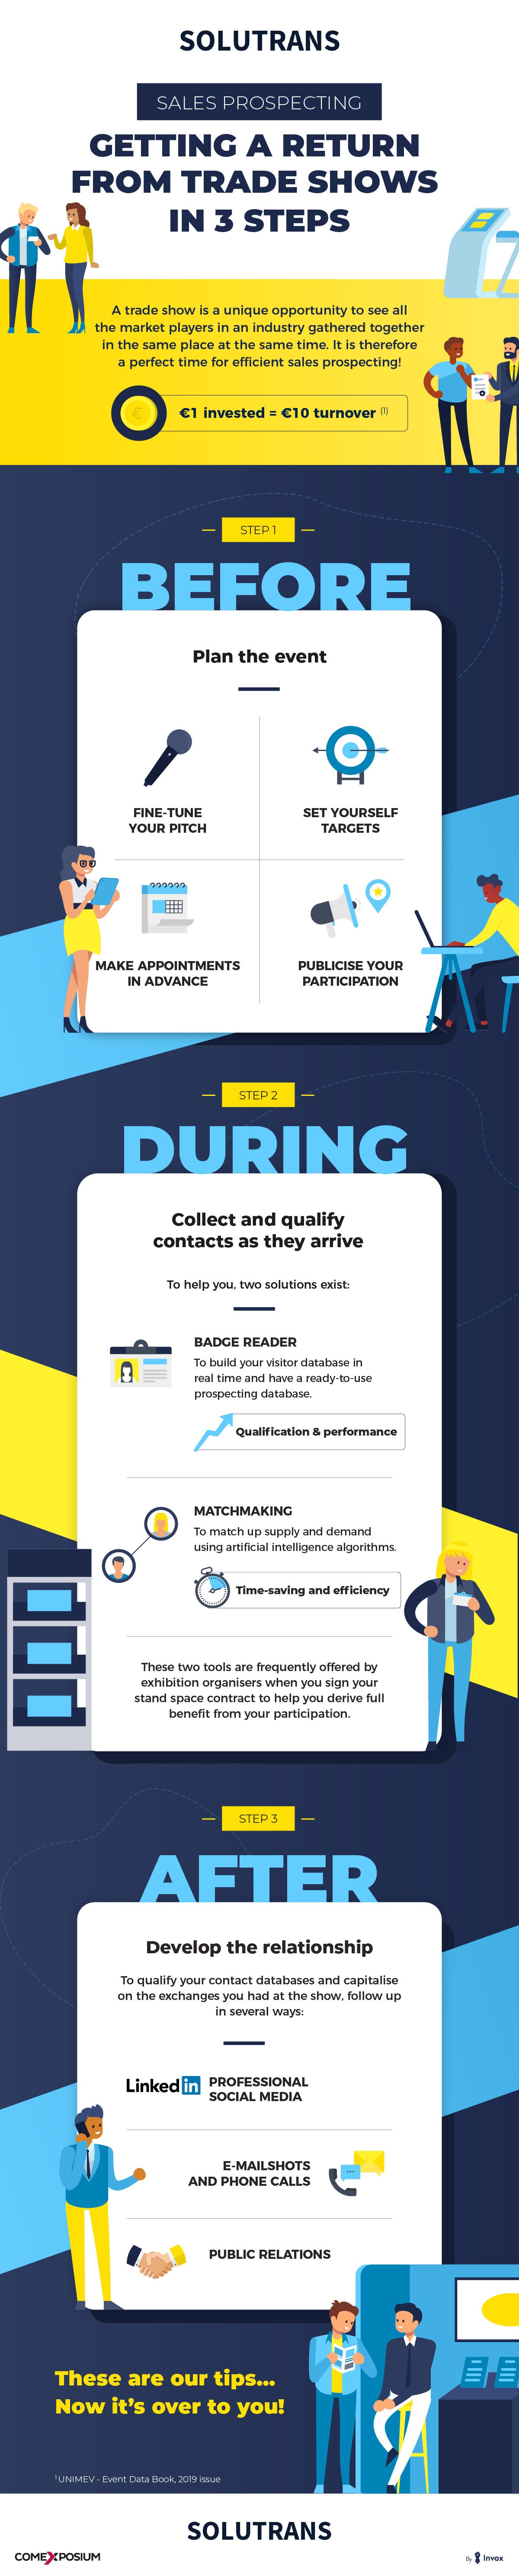 Infography about sales prospecting and getting a return from trade shows in 3 steps